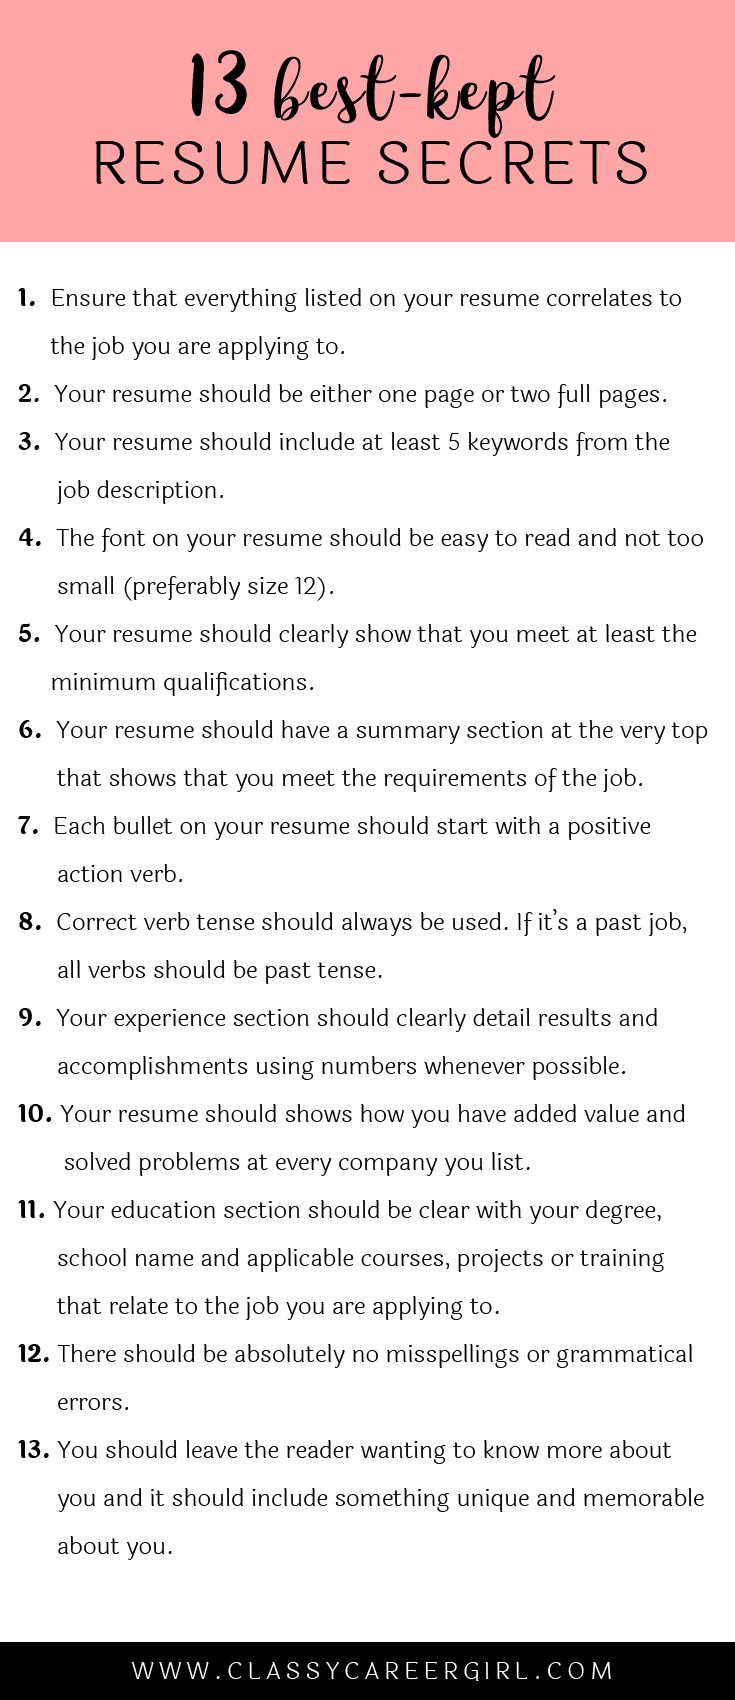 Opposenewapstandardsus  Surprising  Ideas About Resume On Pinterest  Cv Format Resume  With Engaging Some Hiring Managers Will Toss Your Resume Out If You Dont Know These  With Amusing Achievements On Resume Also What Font To Use On Resume In Addition Nurse Resumes And Hr Resumes As Well As Volunteer Experience Resume Additionally High School Education On Resume From Pinterestcom With Opposenewapstandardsus  Engaging  Ideas About Resume On Pinterest  Cv Format Resume  With Amusing Some Hiring Managers Will Toss Your Resume Out If You Dont Know These  And Surprising Achievements On Resume Also What Font To Use On Resume In Addition Nurse Resumes From Pinterestcom